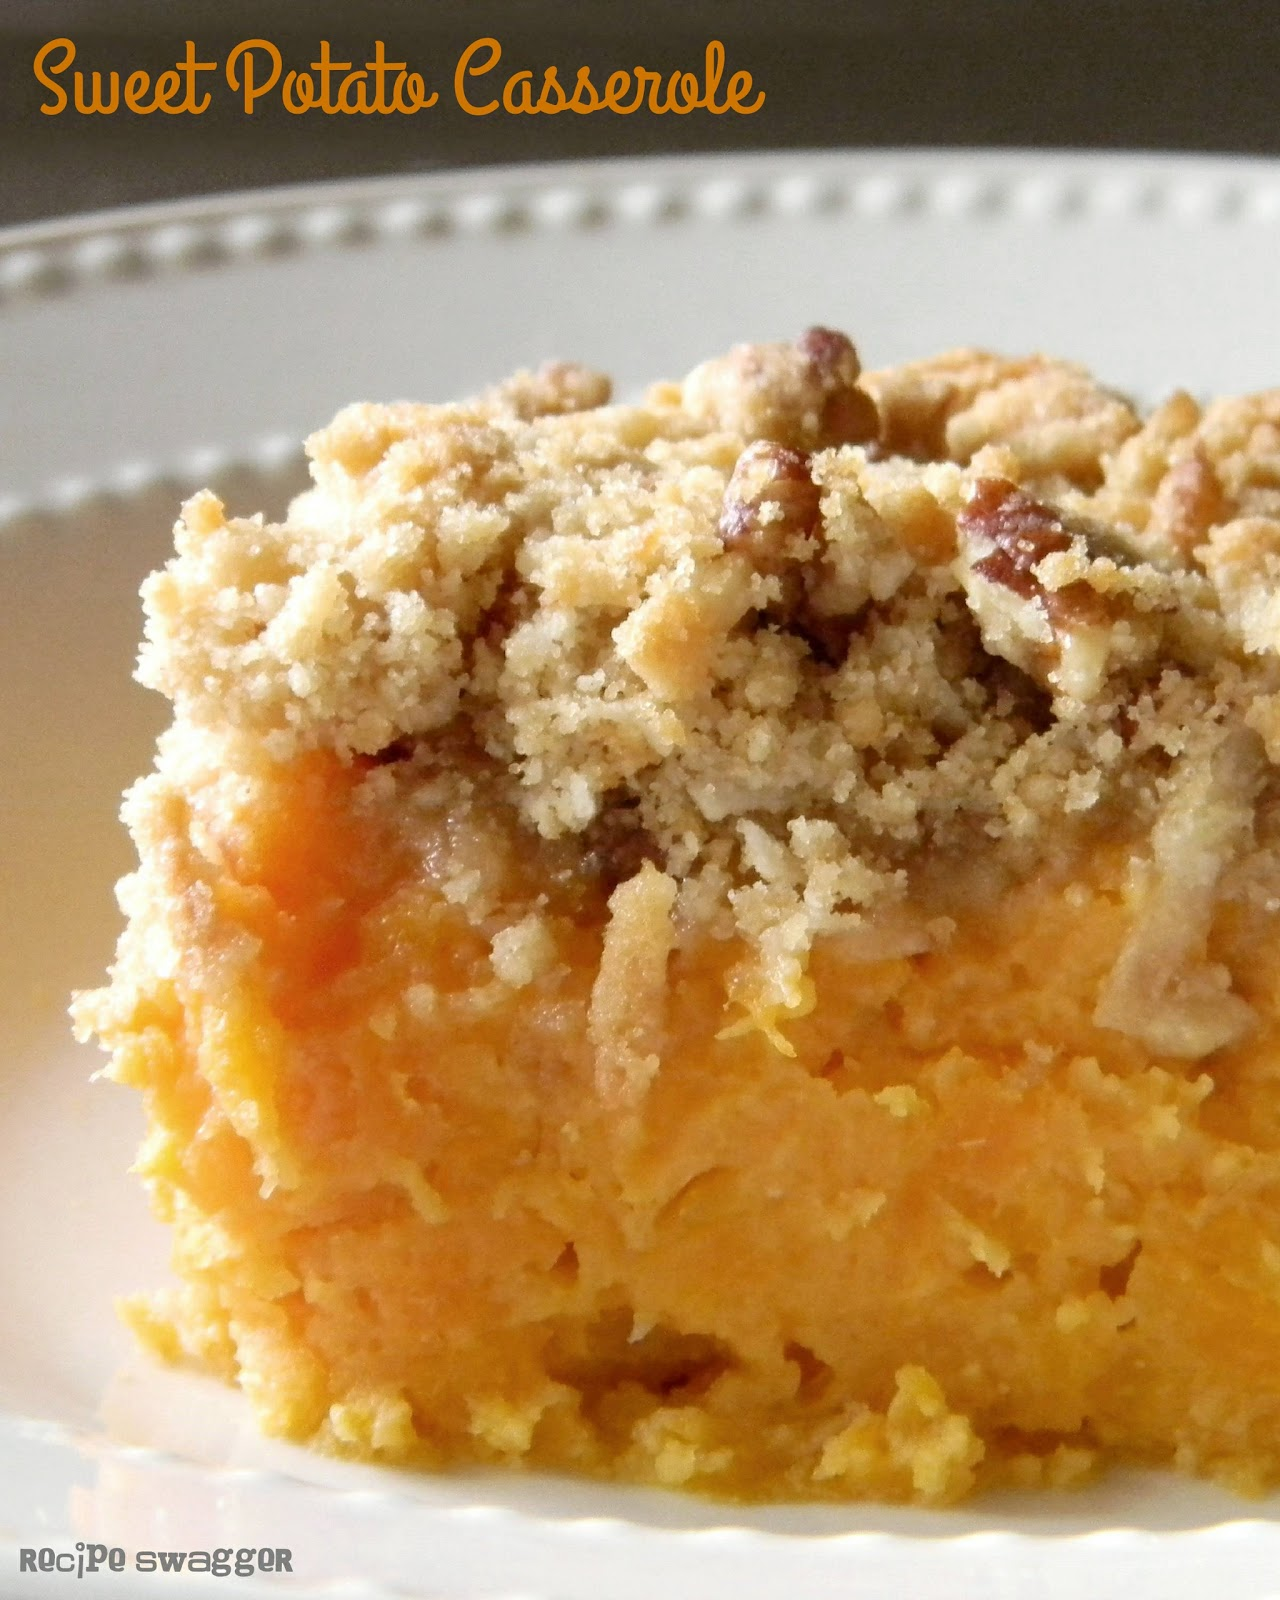 butter casserole ginny brehmer s sweet potato casserole sweet potato ...